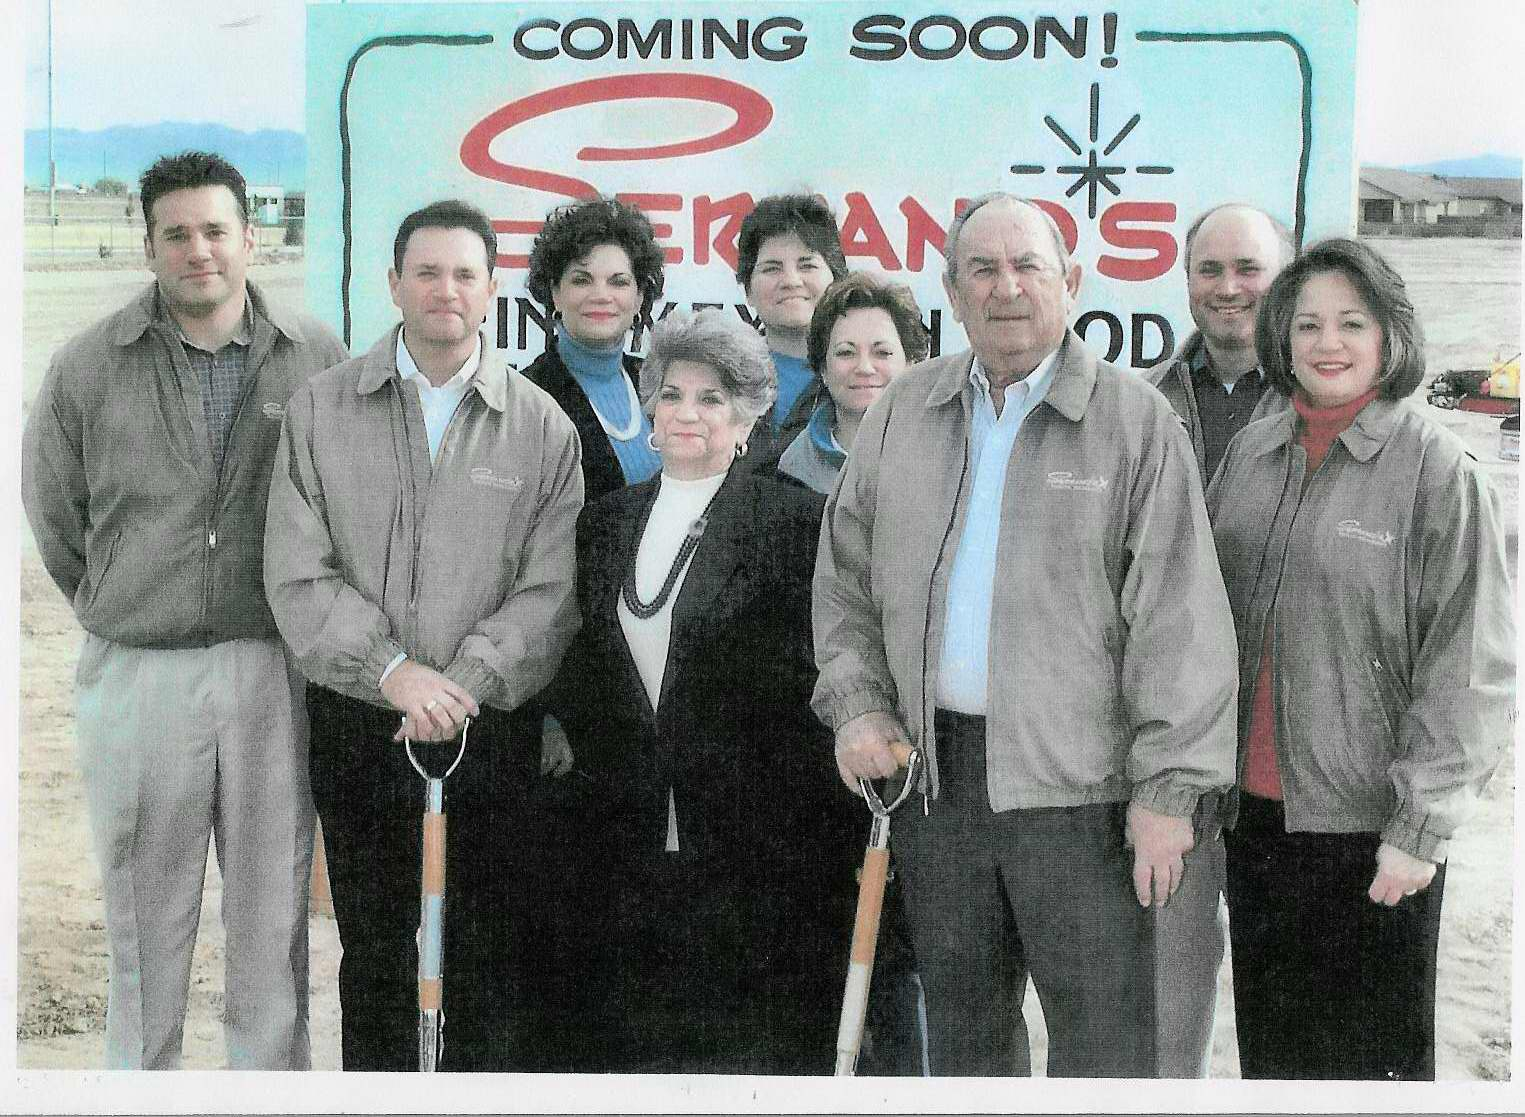 Serrano Family at a Restaurant Groundbreaking, 2005